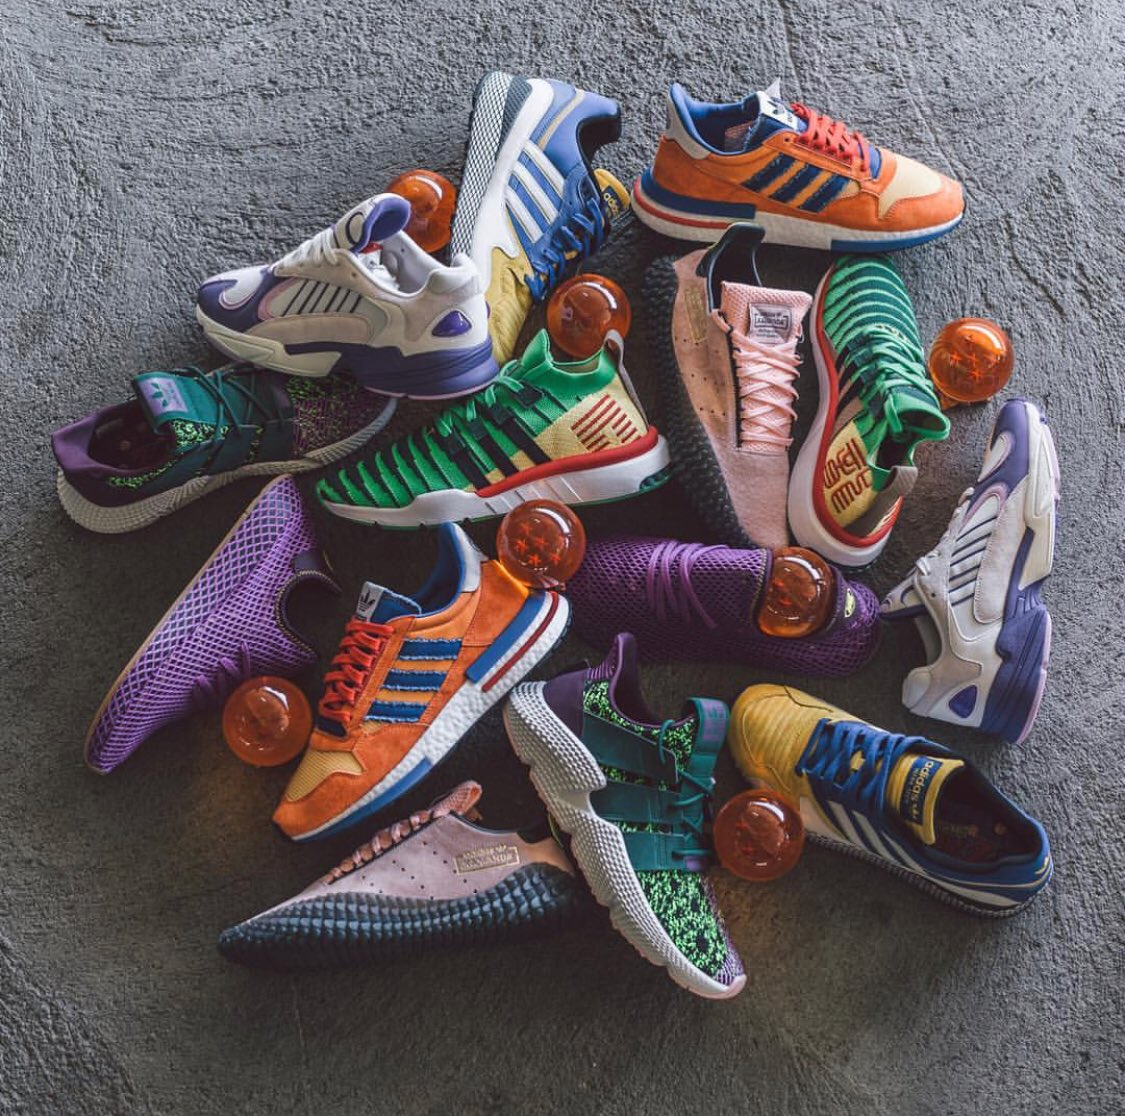 13fd35eab5f6 The entire Dragon Ball Z x @AdidasOriginals  collectionpic.twitter.com/dHyJUaudhR